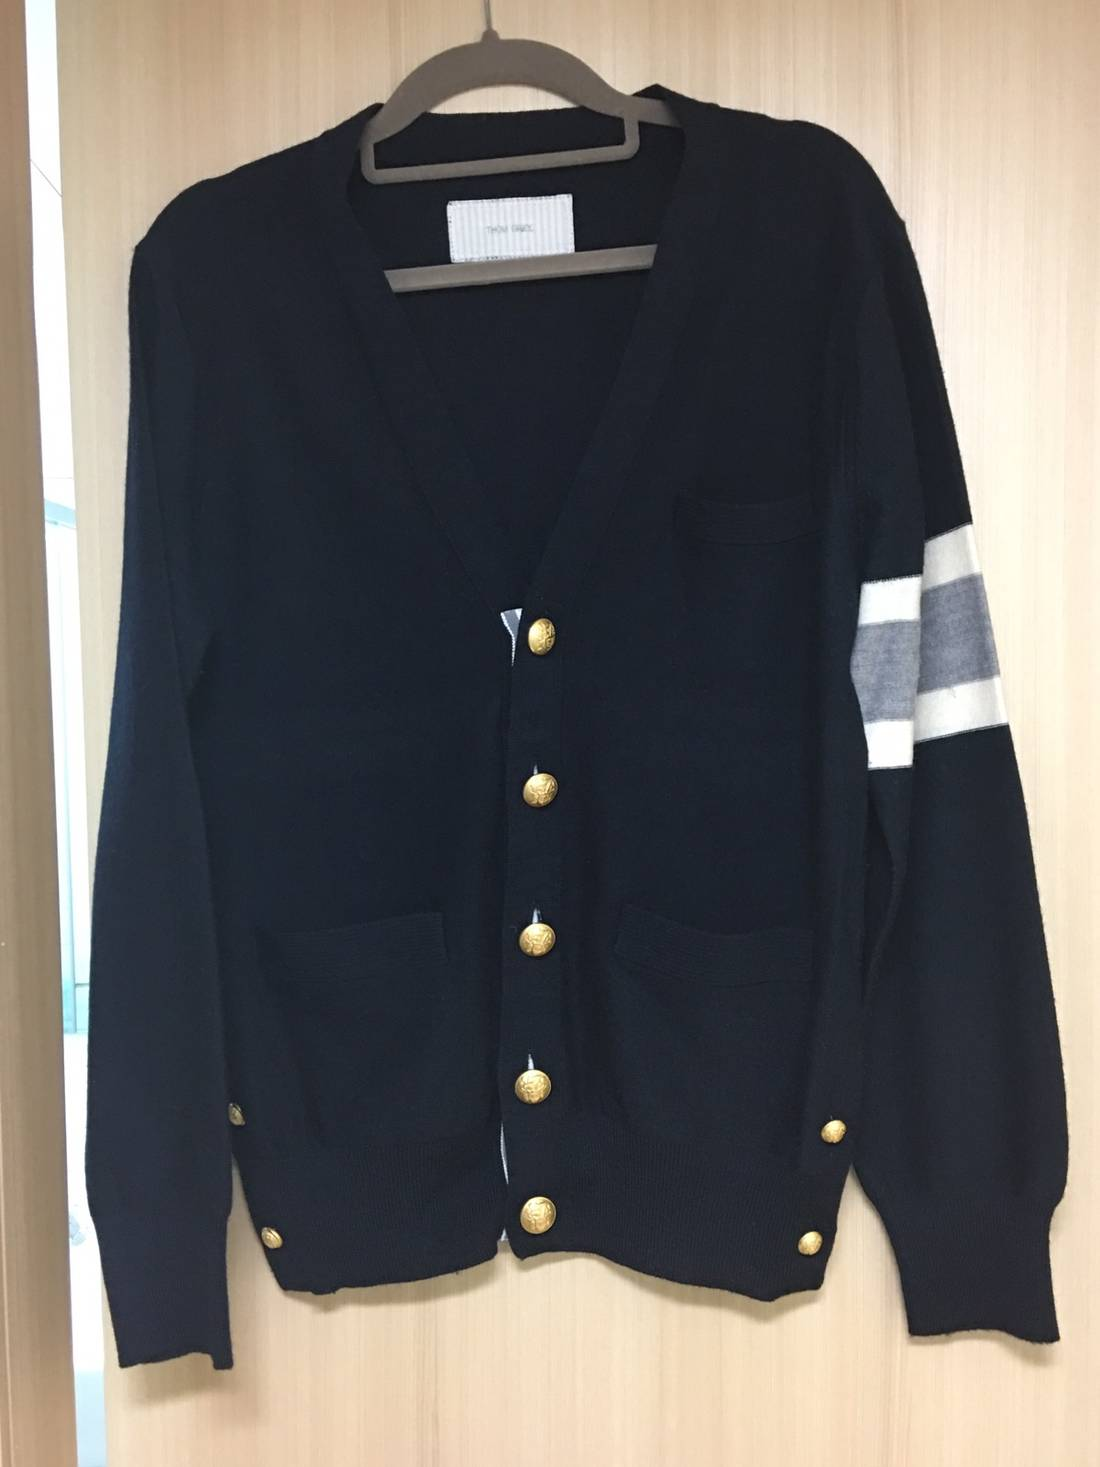 Thom Browne Navy Knit Cardigan With Gold Buttons Very Limited Size ...